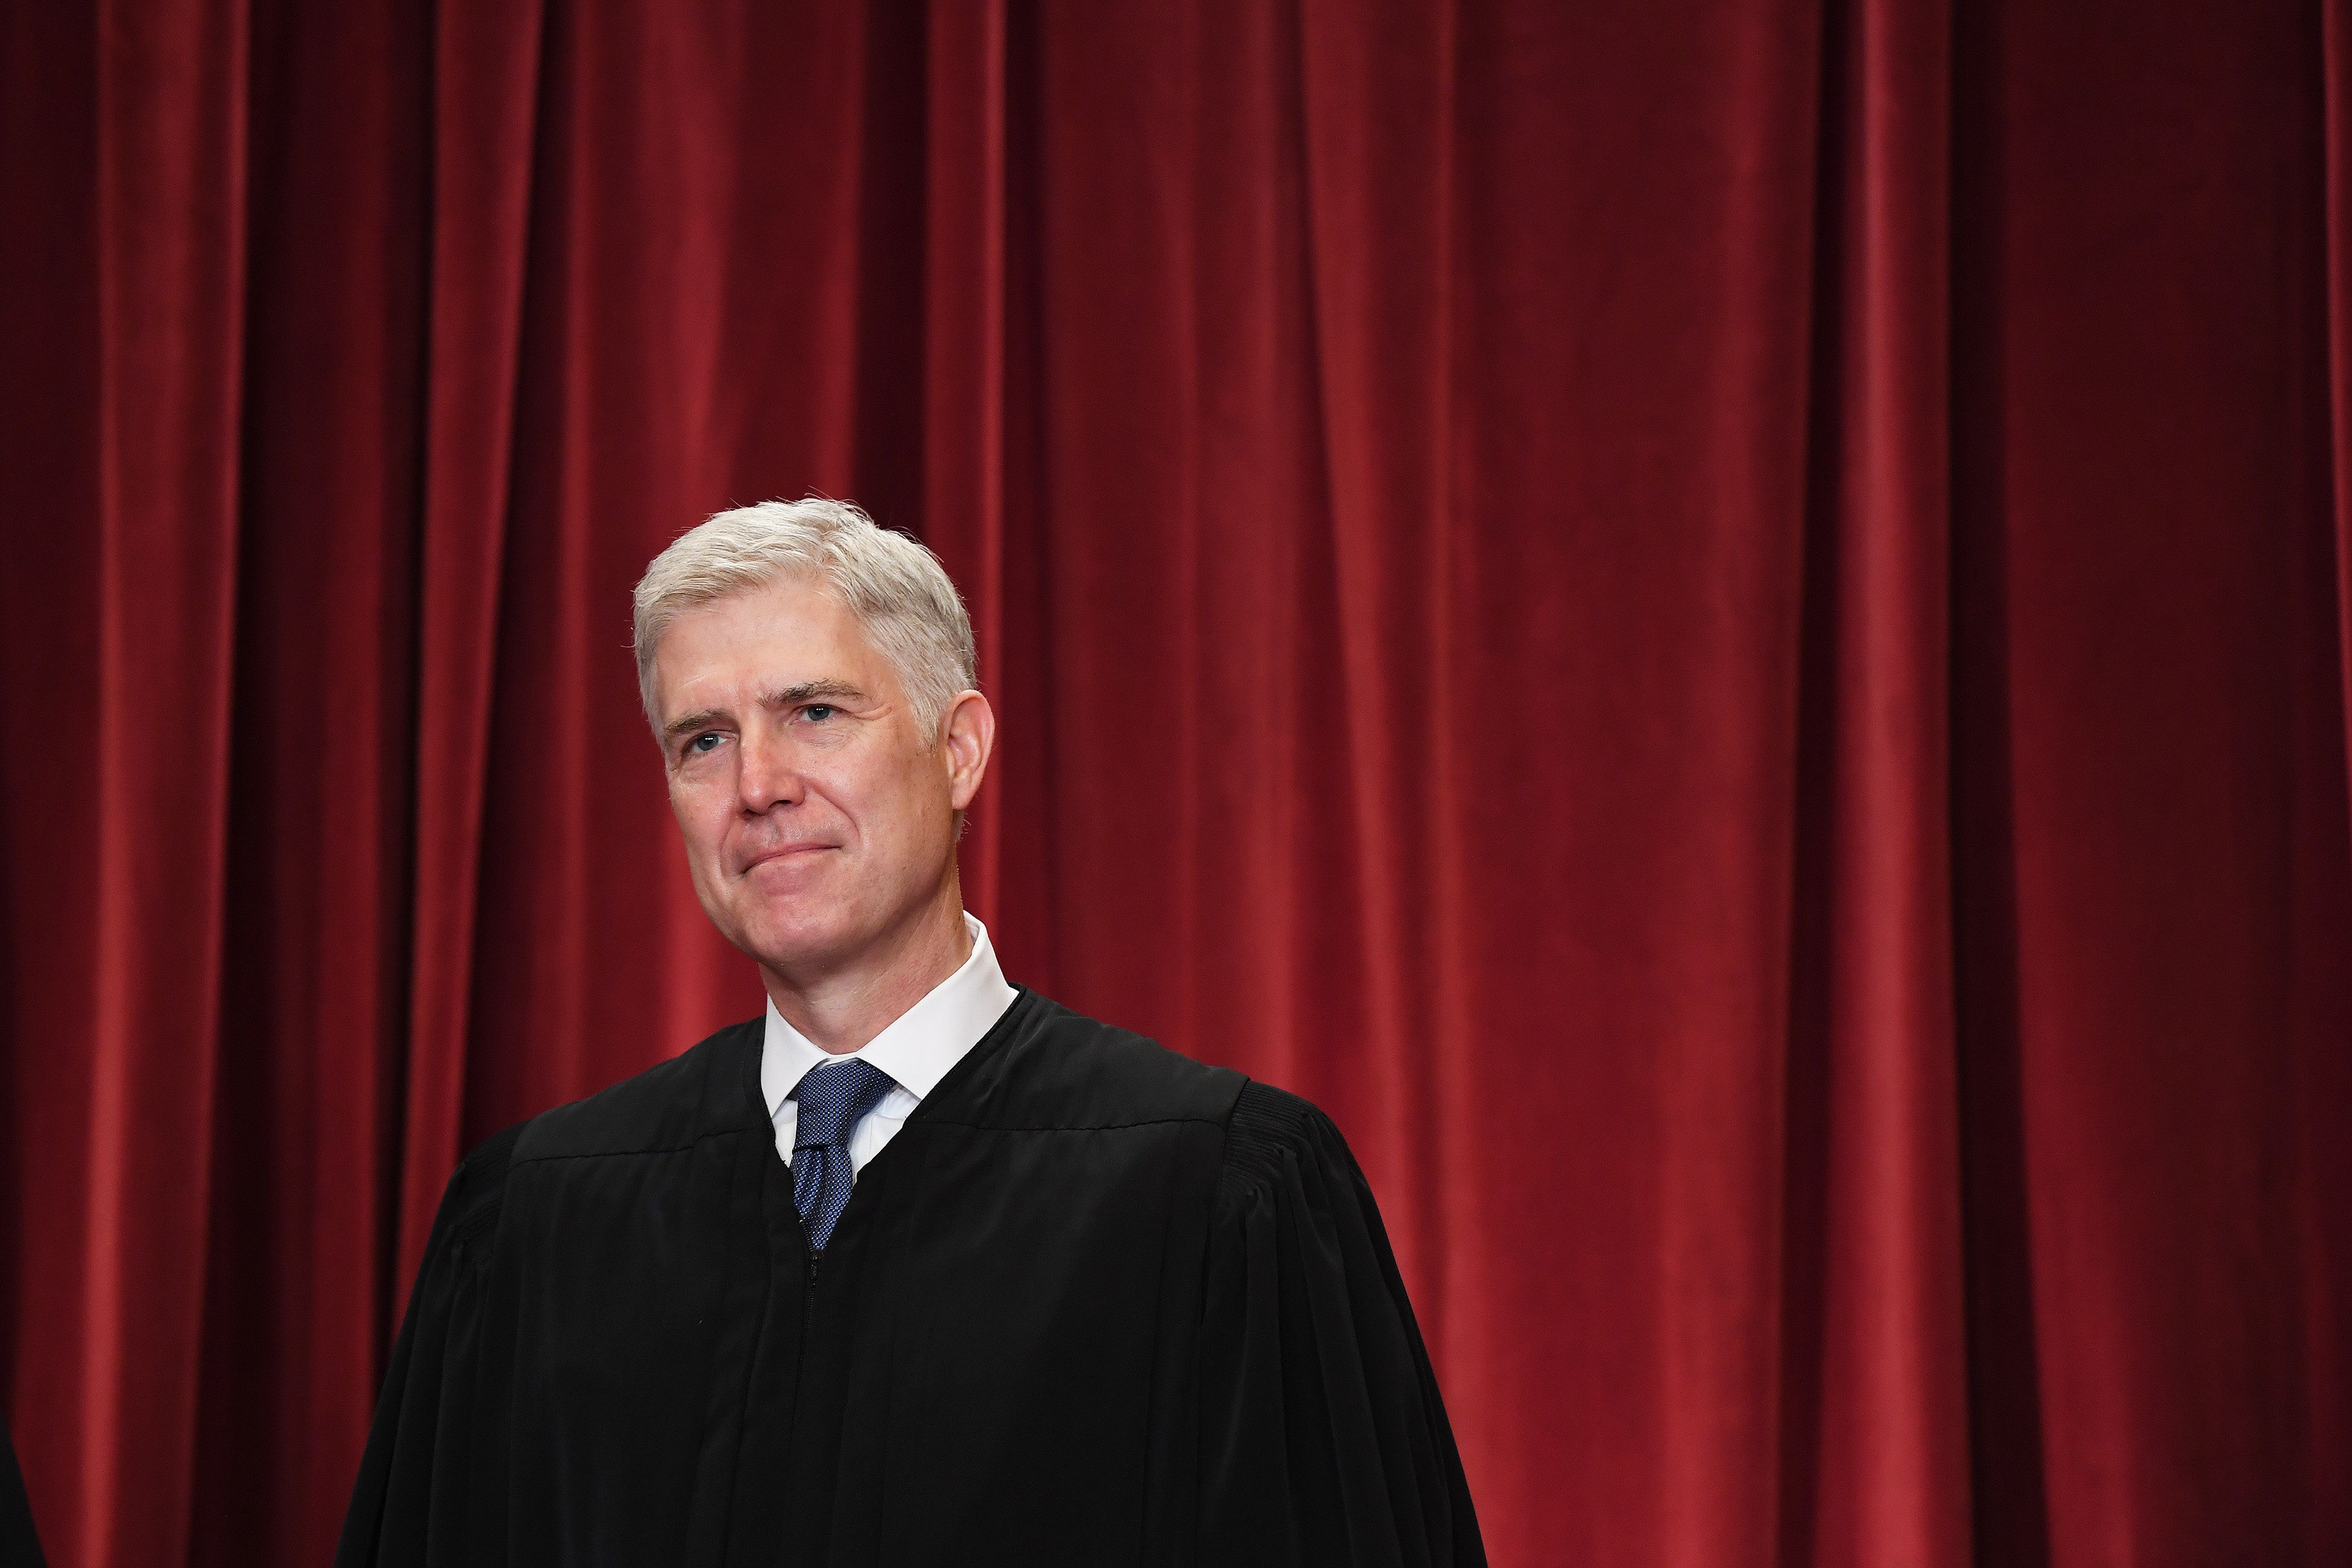 Justice Neil Gorsuch, a conservative jurist, was confirmed to the Supreme Court without facing any allegations of sexual impropriety in 2017.